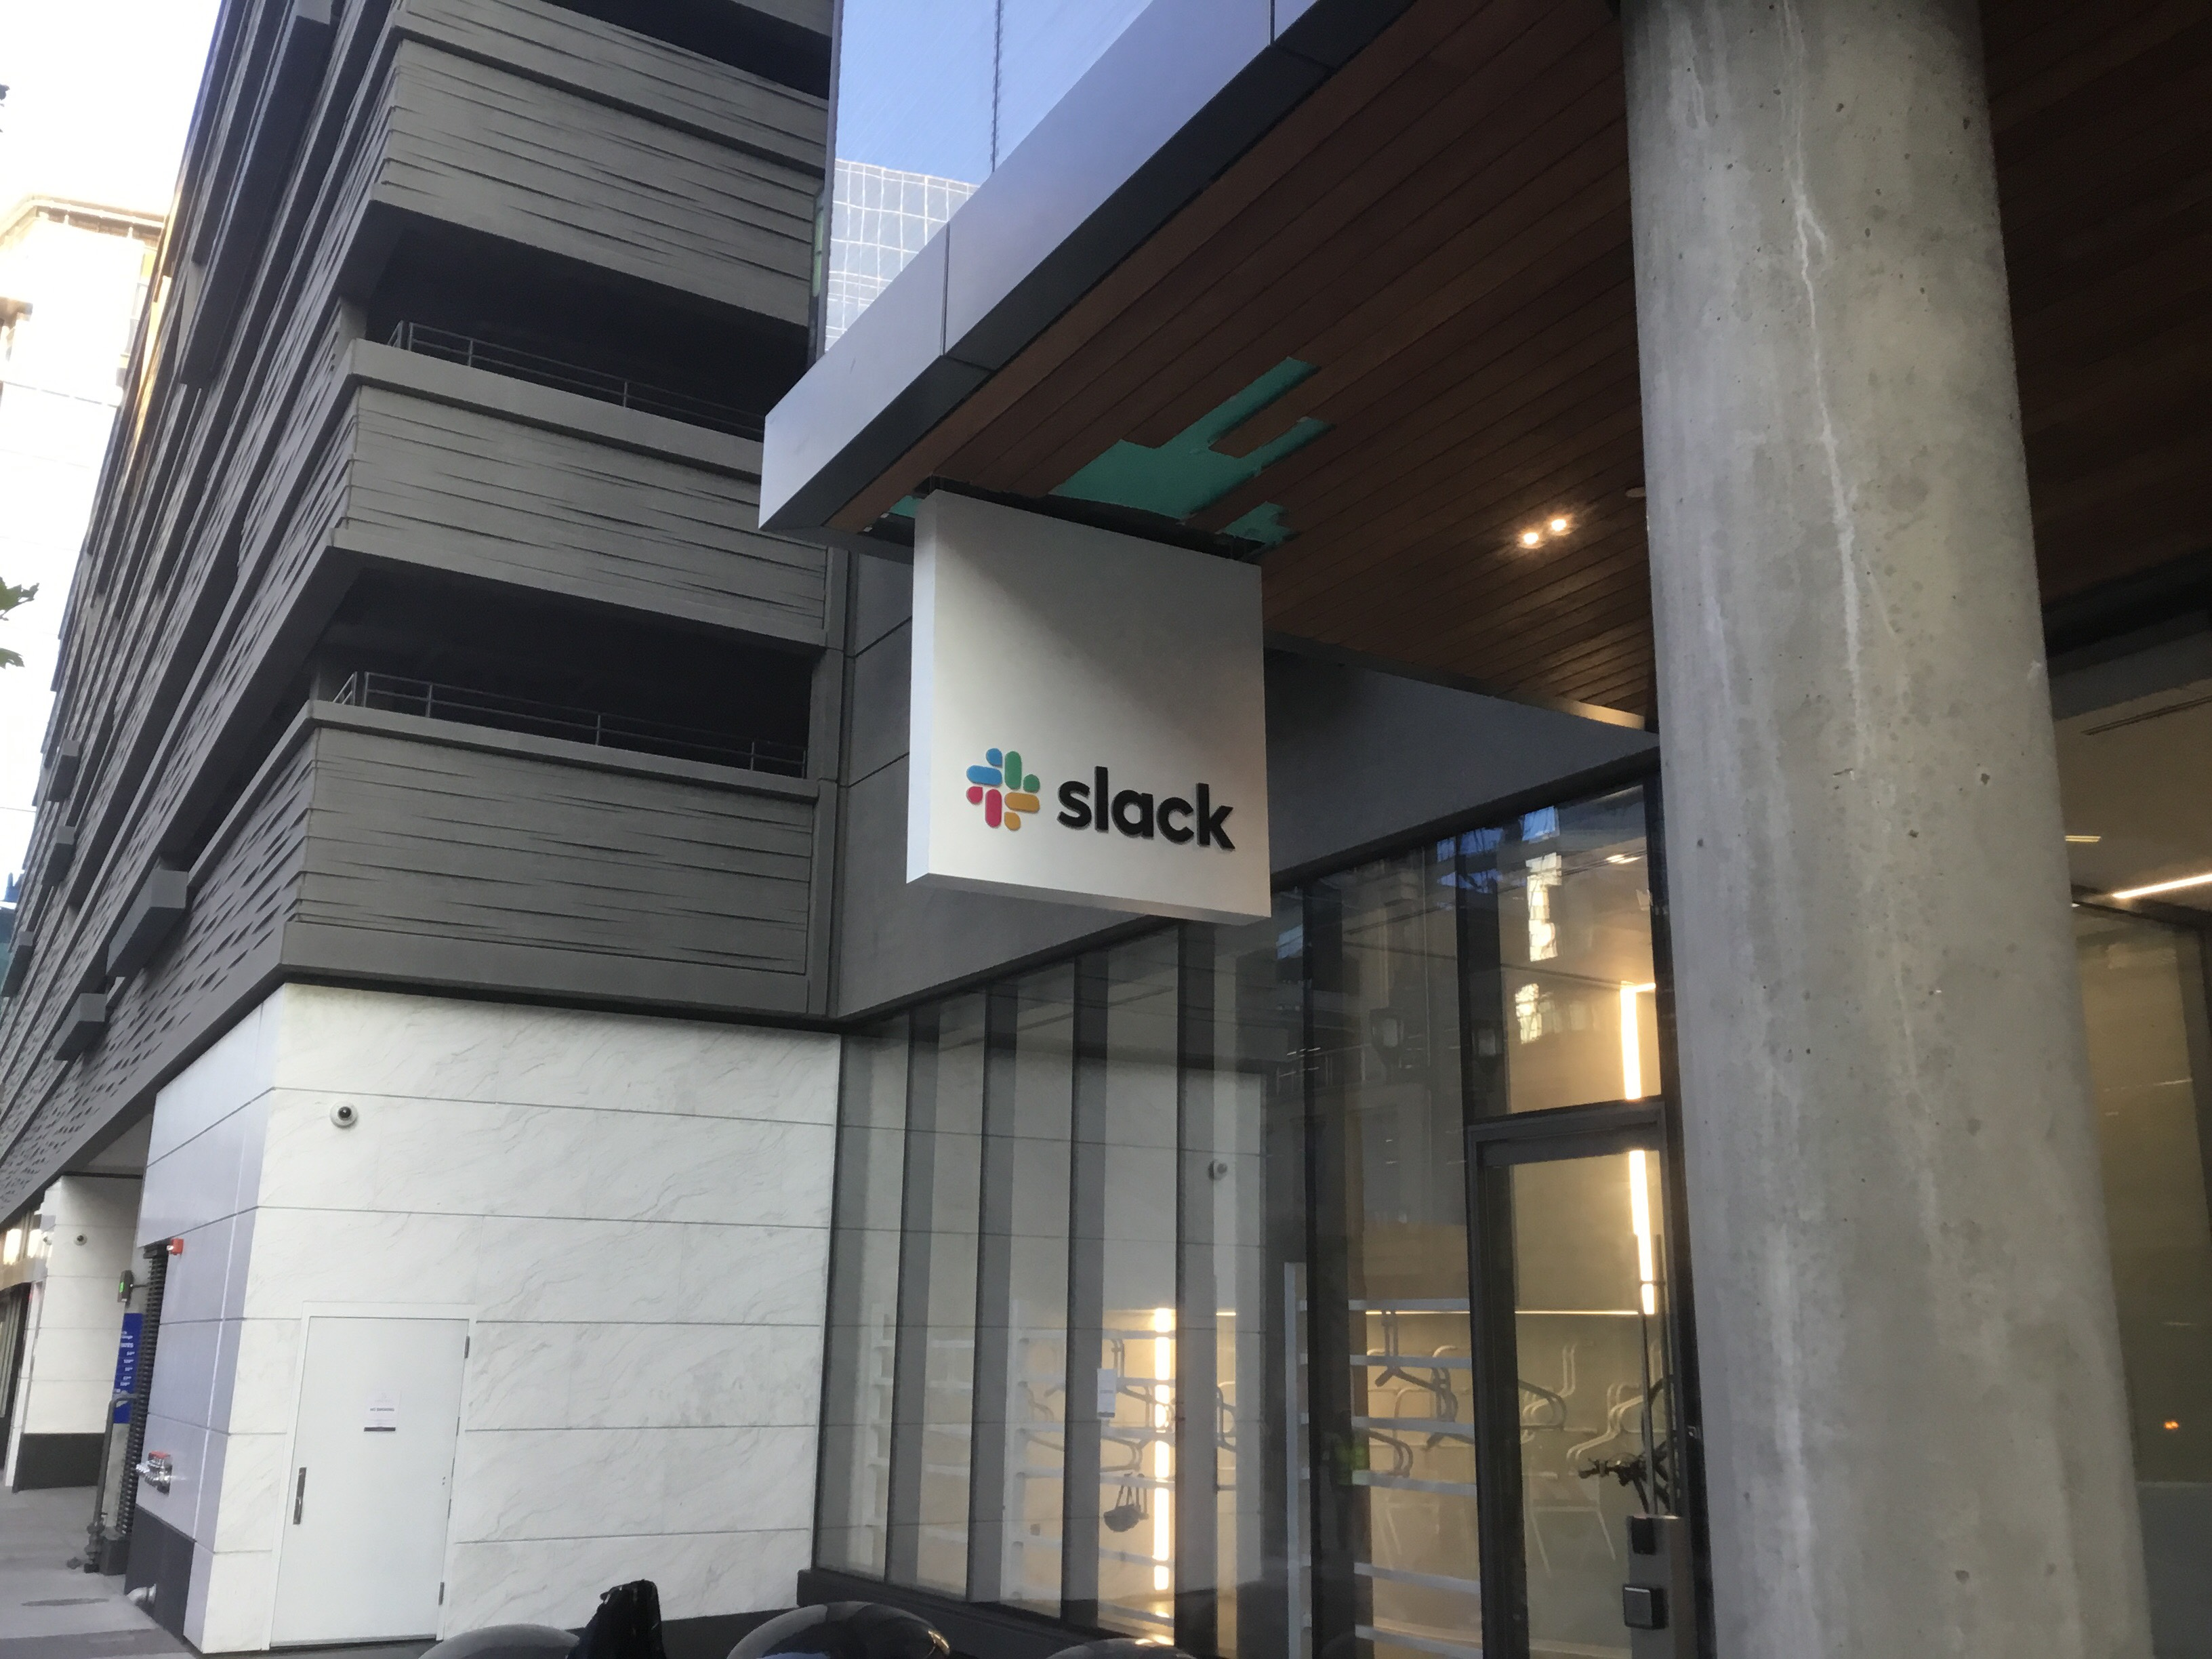 SLACK SIGN DENVER